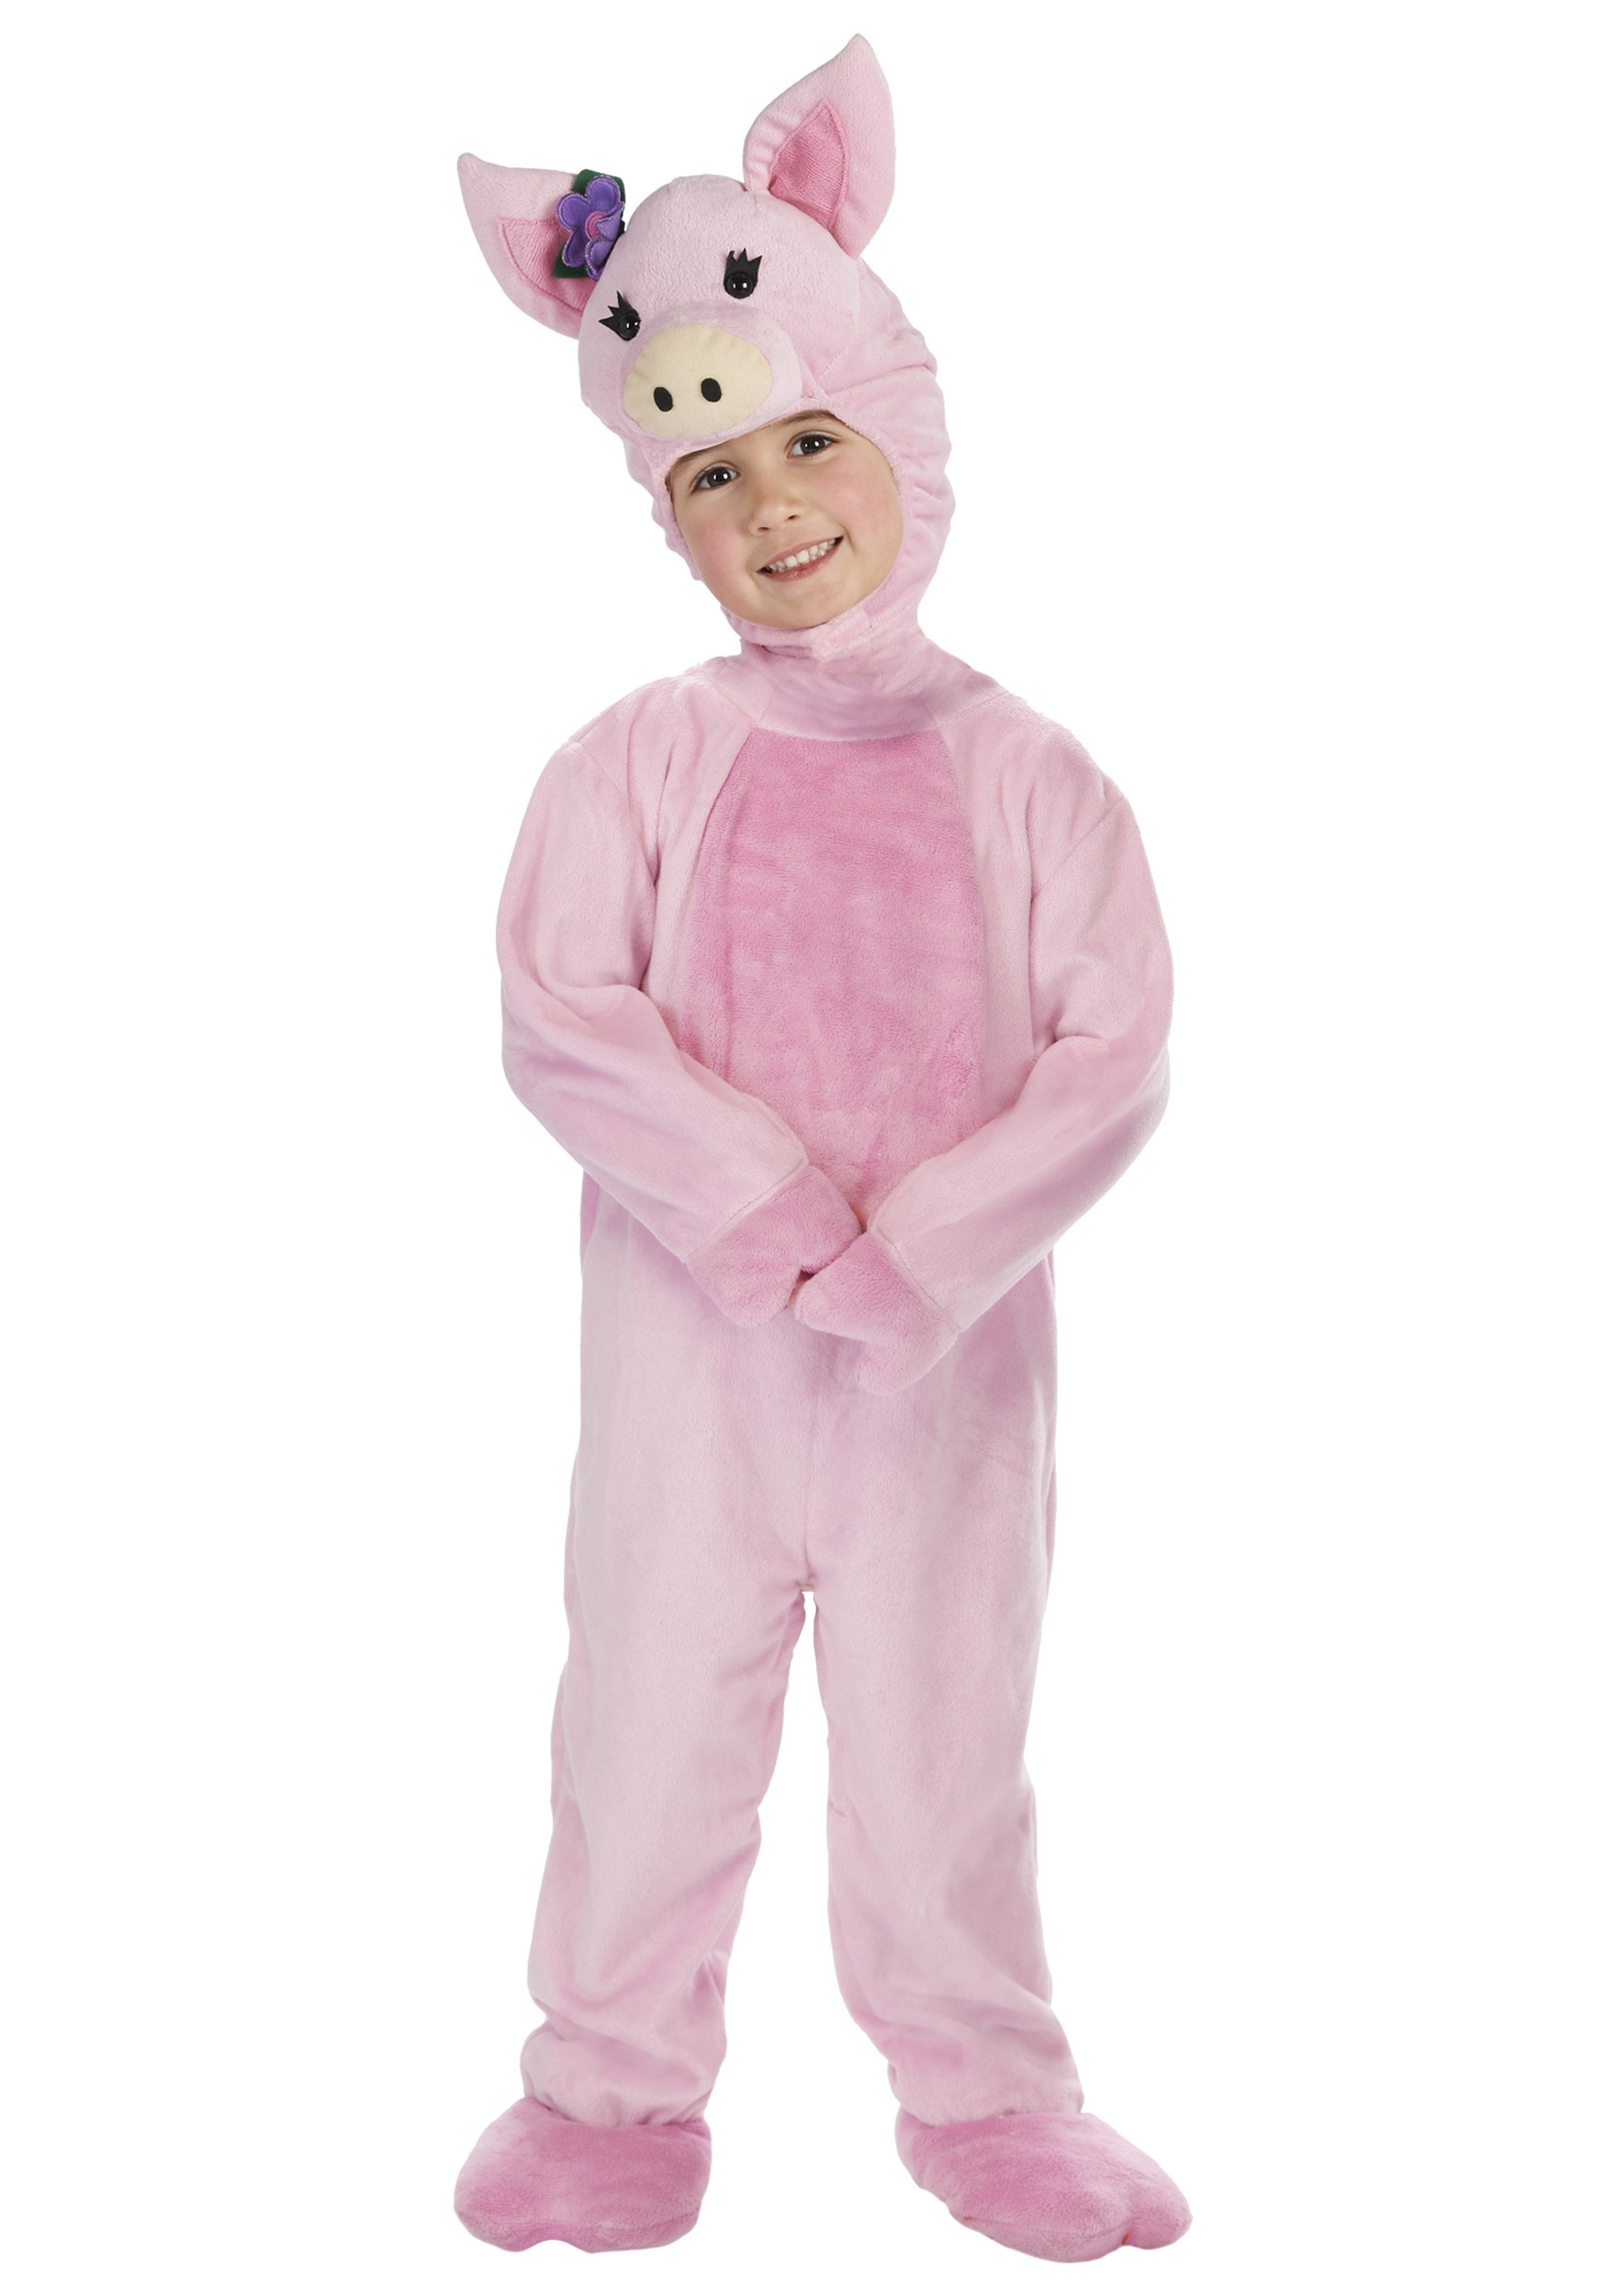 Toddler Pig Costume  sc 1 st  Halloween Costumes & Toddler Pig Costume - Halloween Costumes